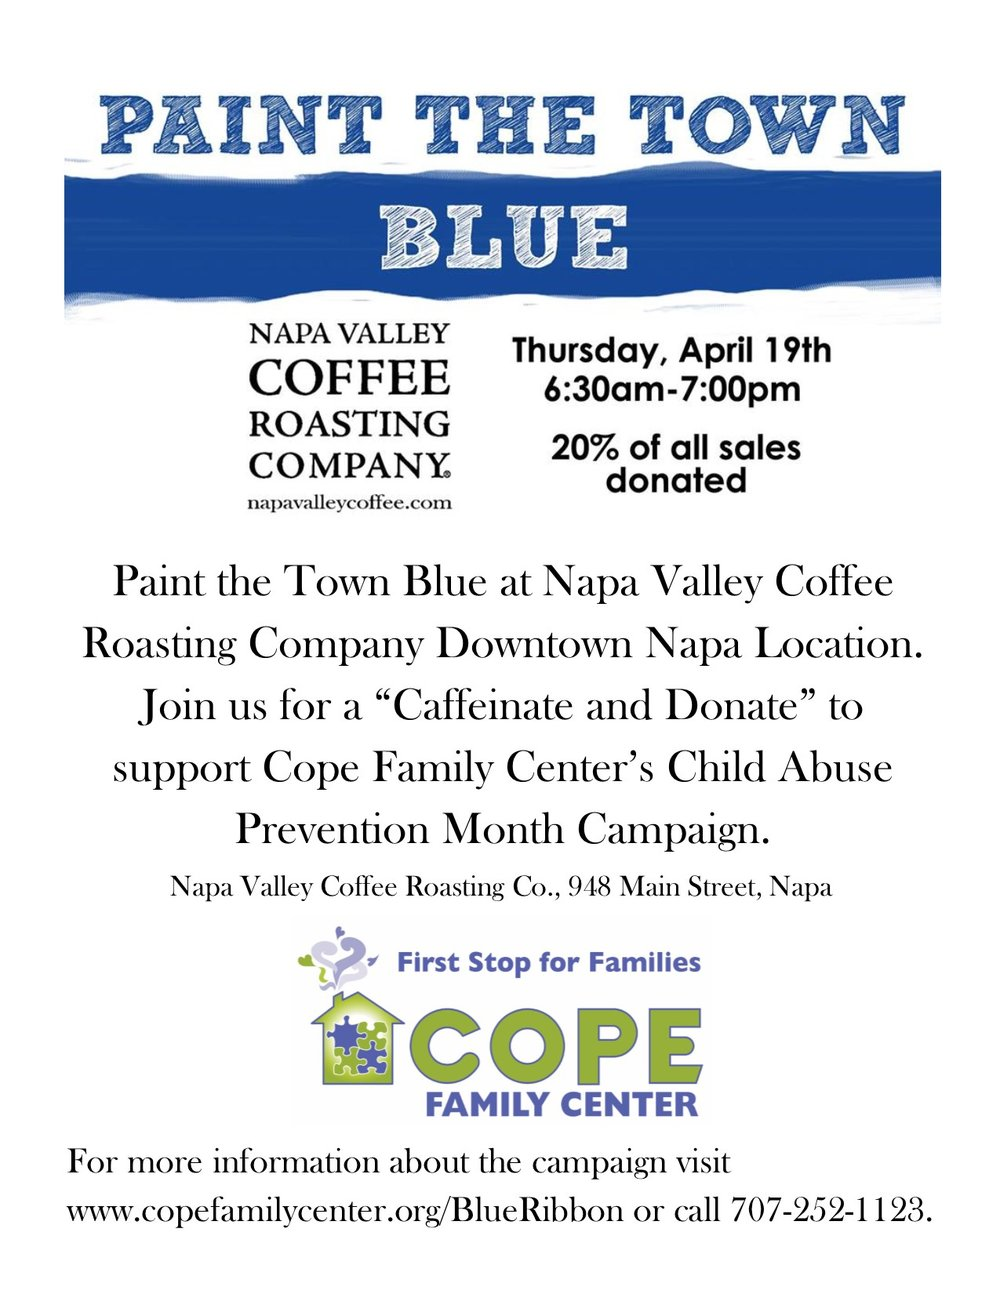 Cope Family Center Child Abuse Prevention